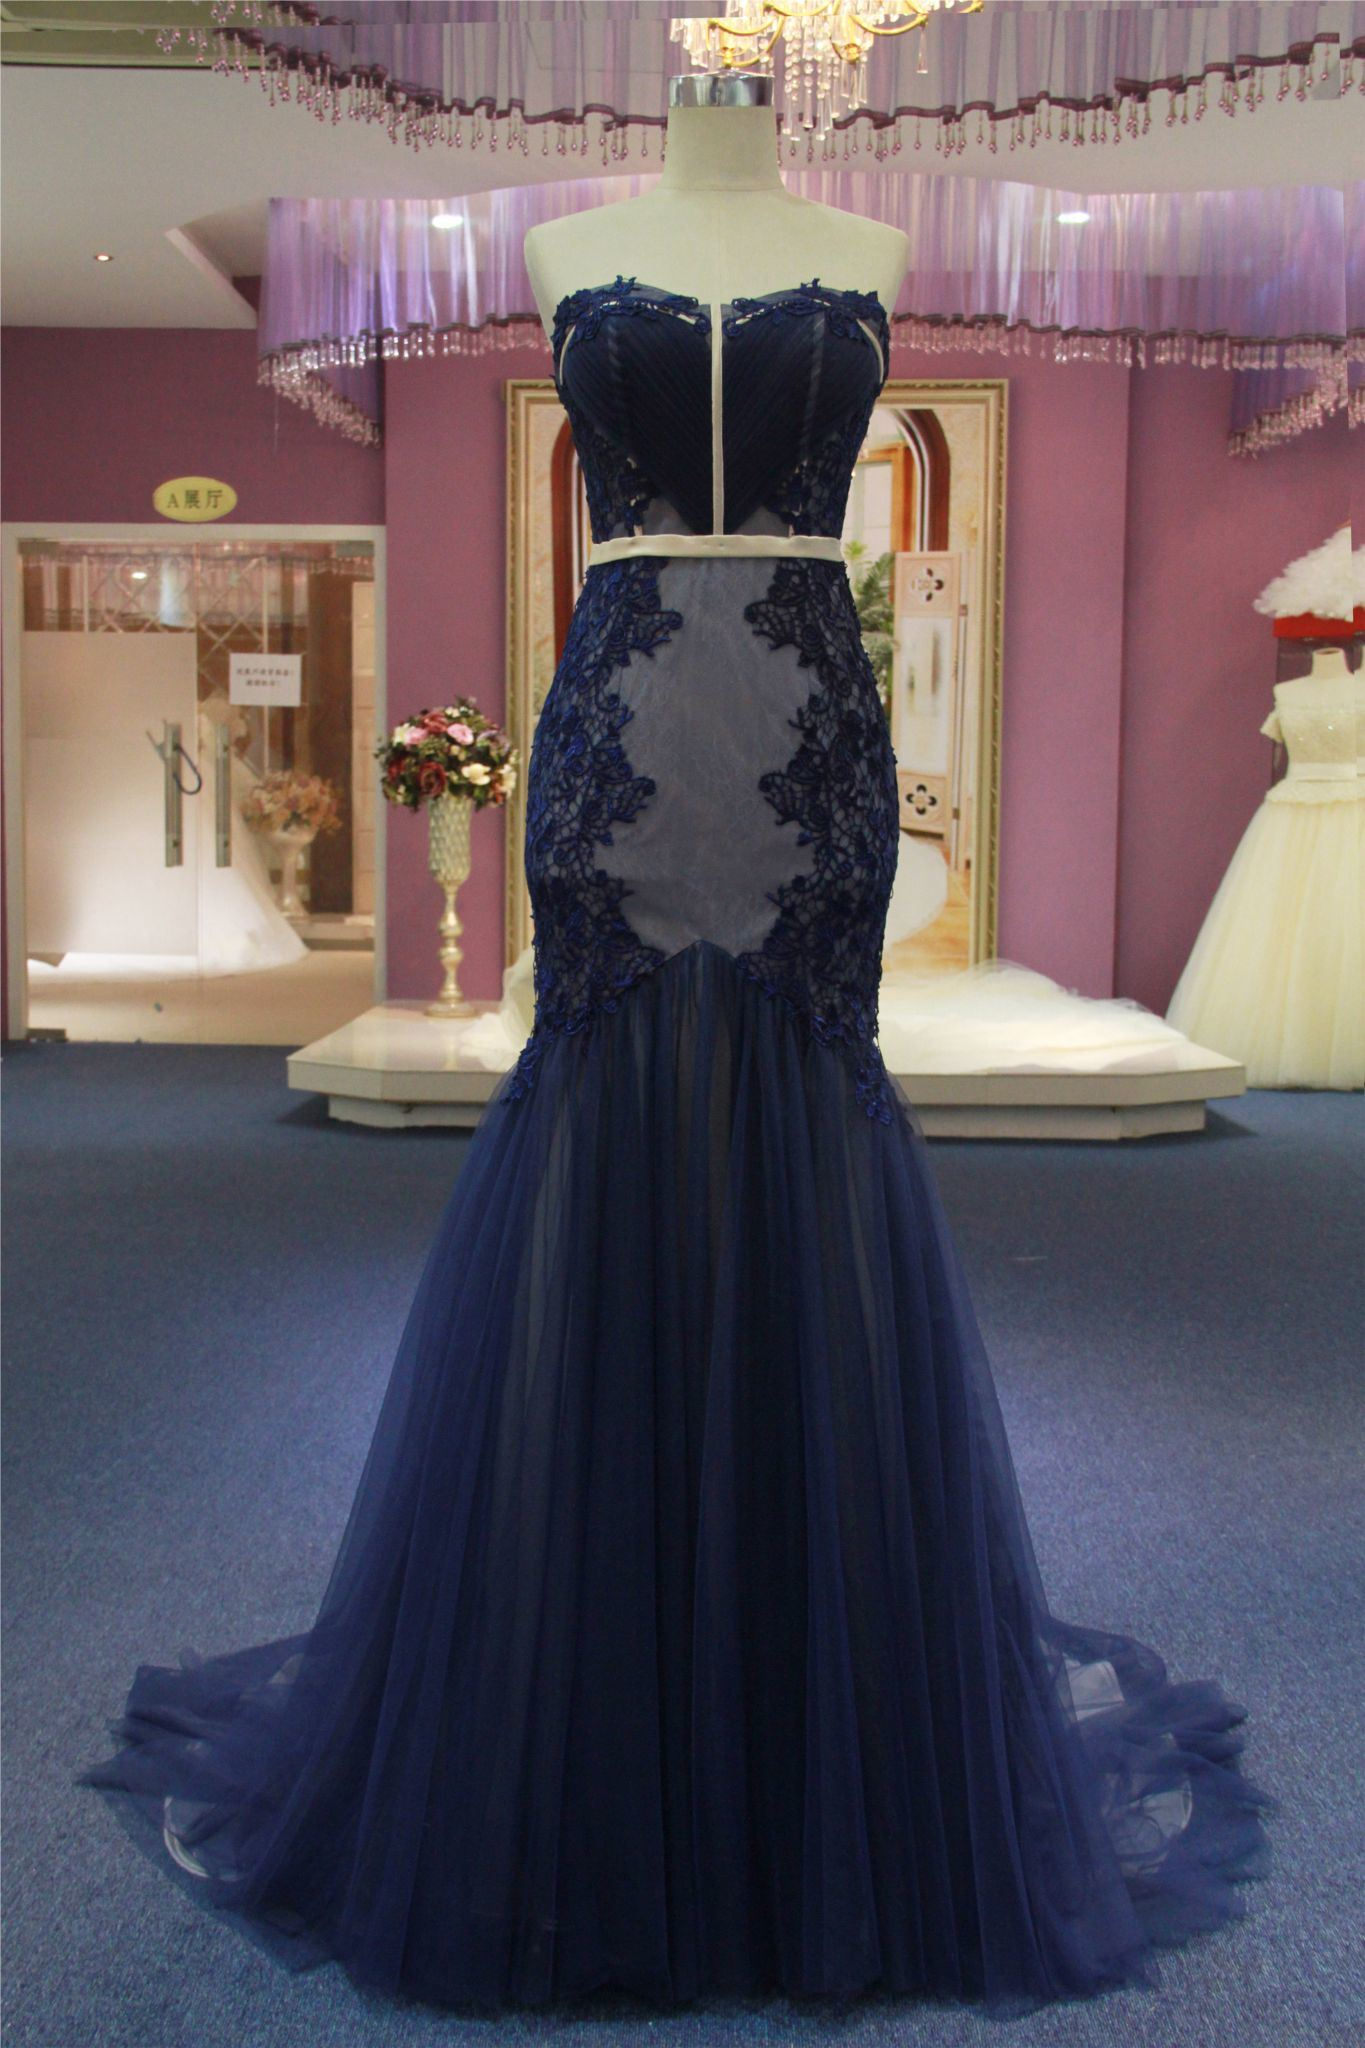 Hot Item Strapless Mermaid Navy Blue Wedding Gown Evening Dress